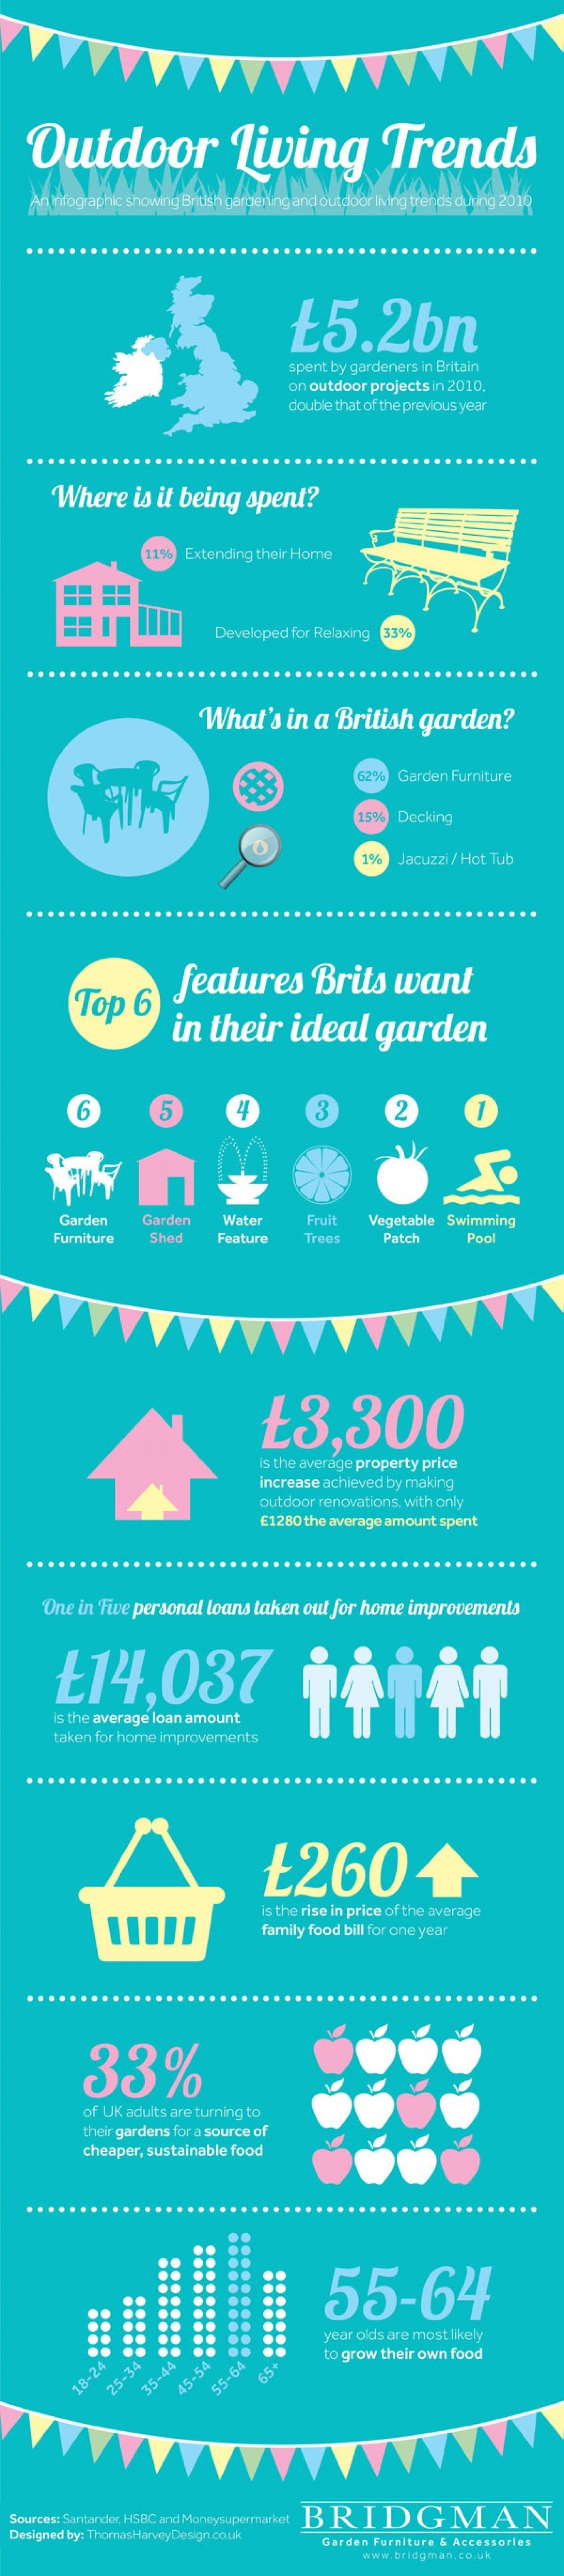 Garden & Home Improvement Trends Infographic